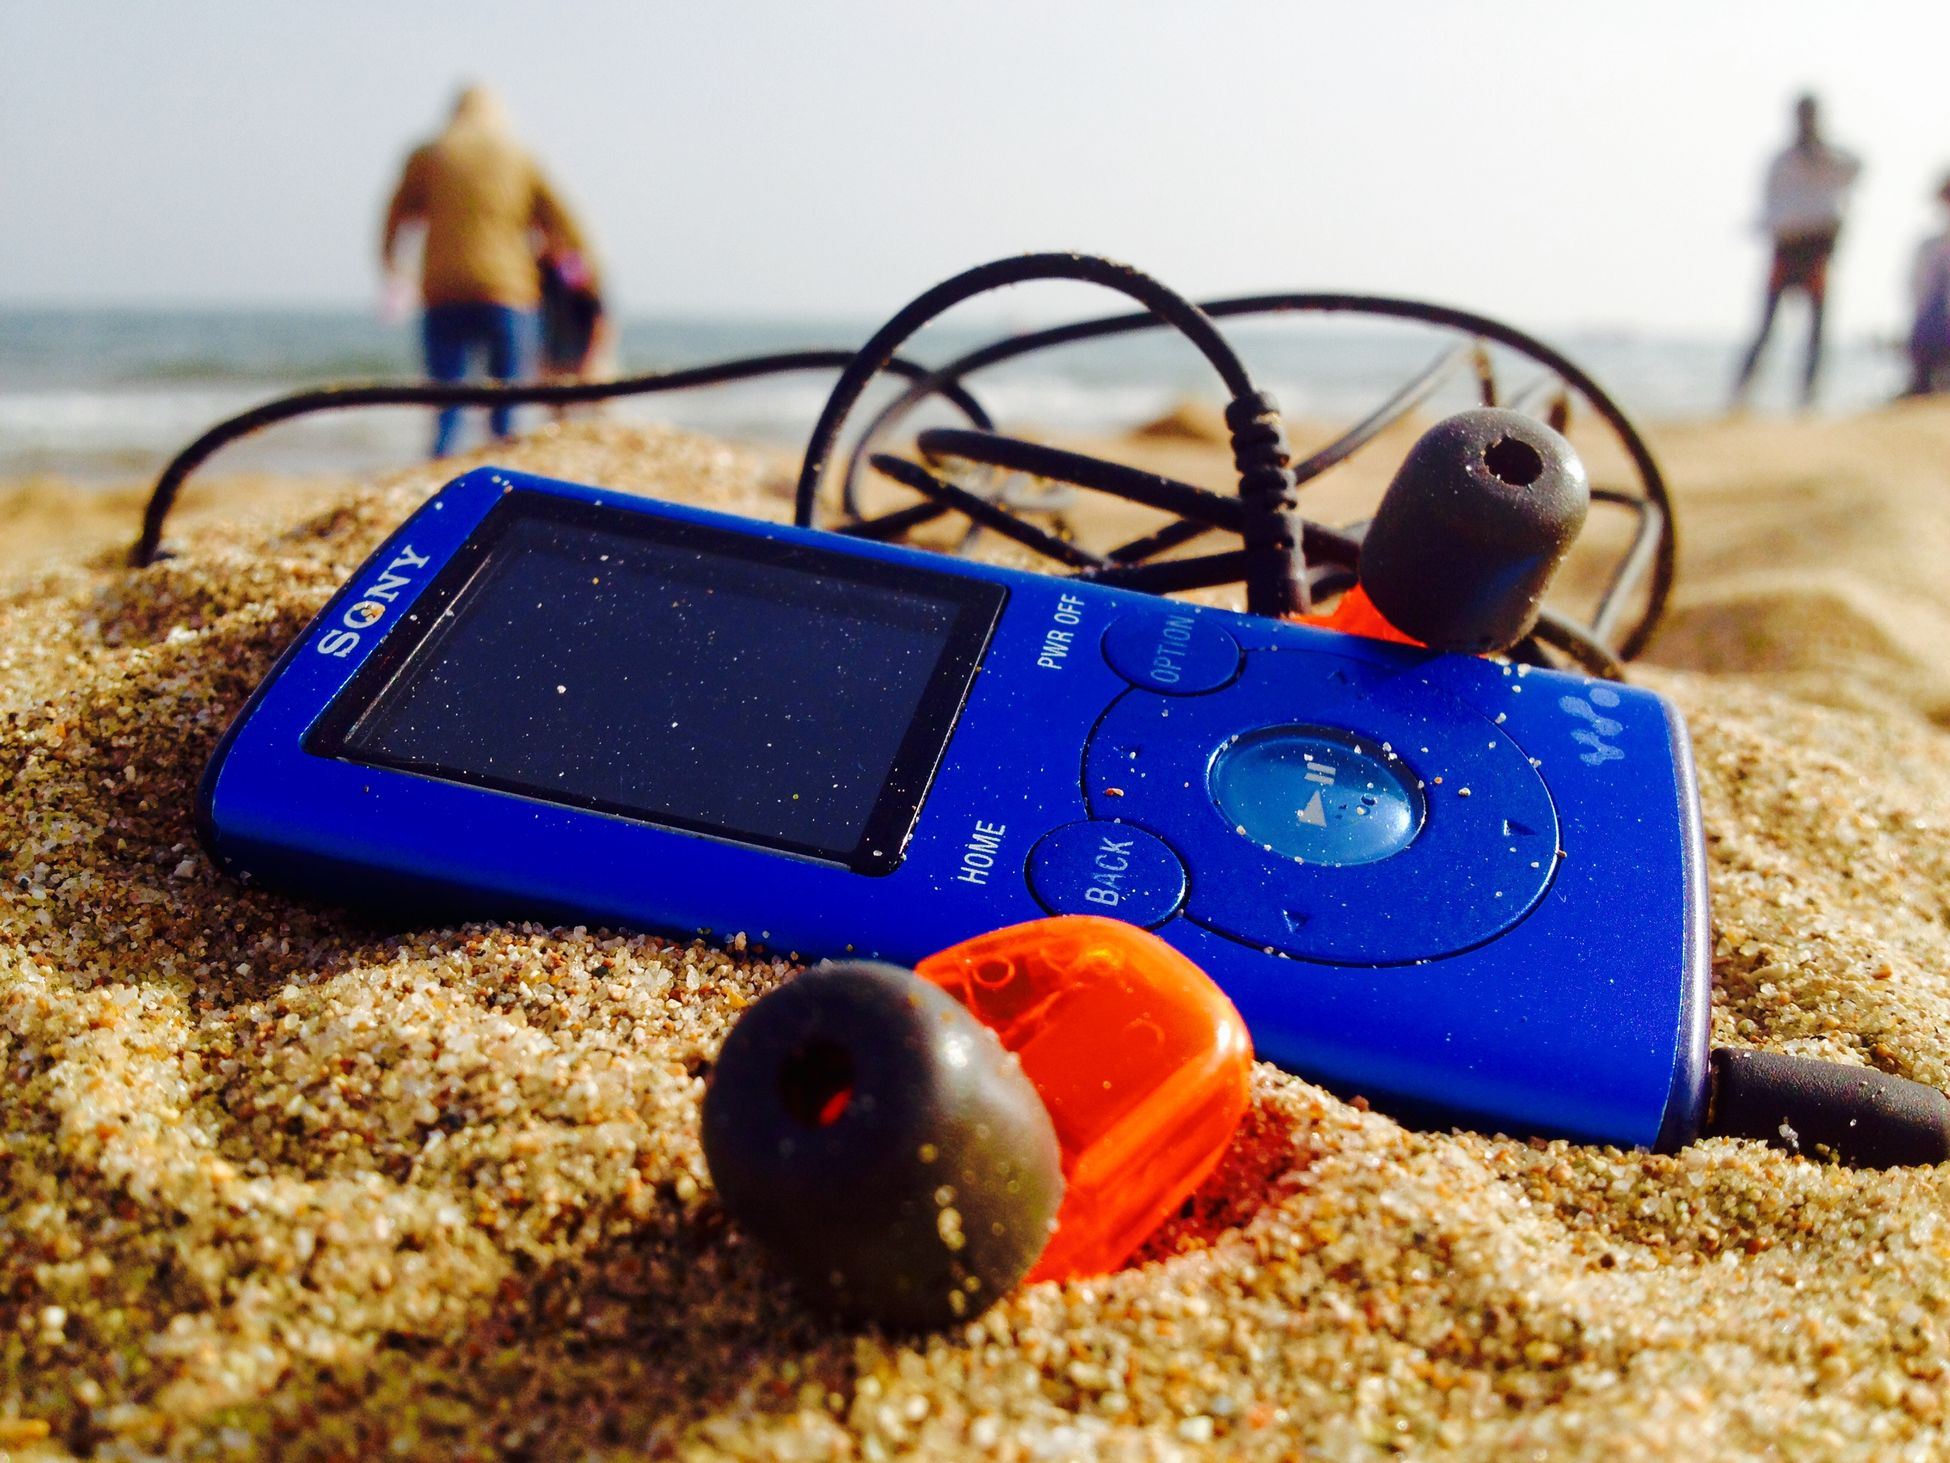 To travel with Walkman Sea